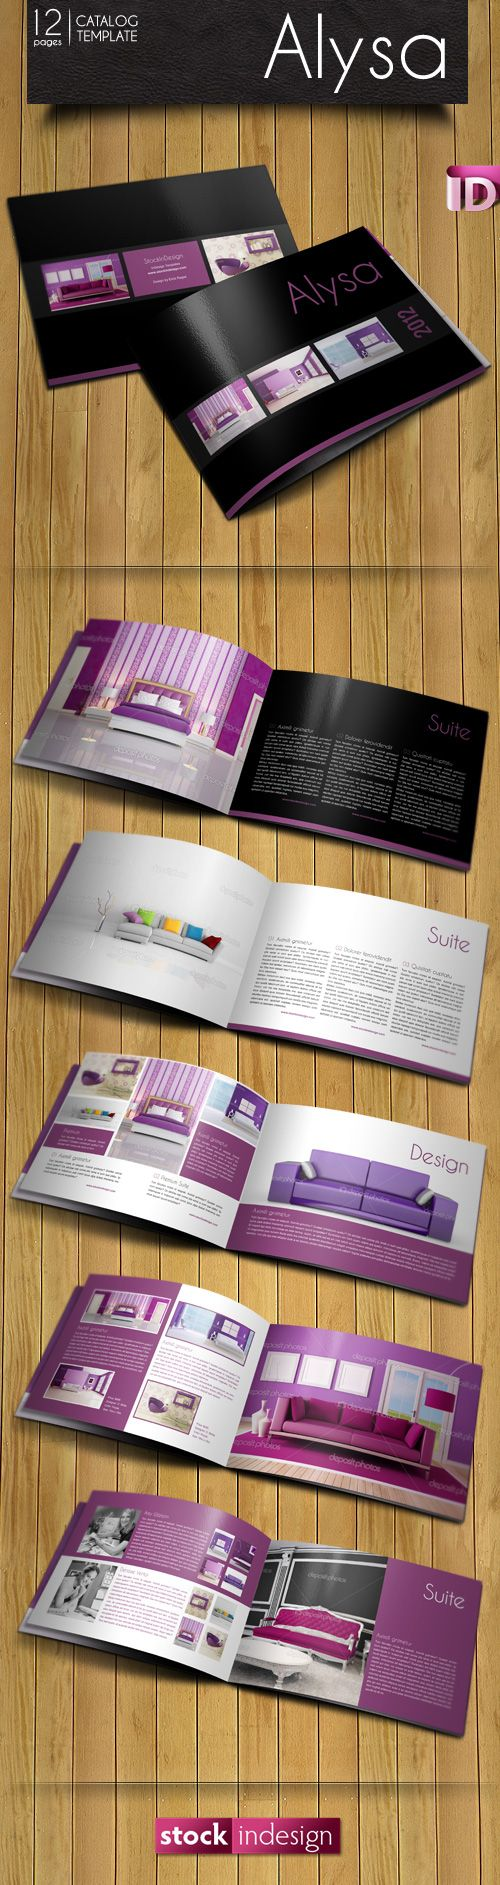 FREE InDesign Catalog Template: Alysa | Lamarche | Pinterest ...